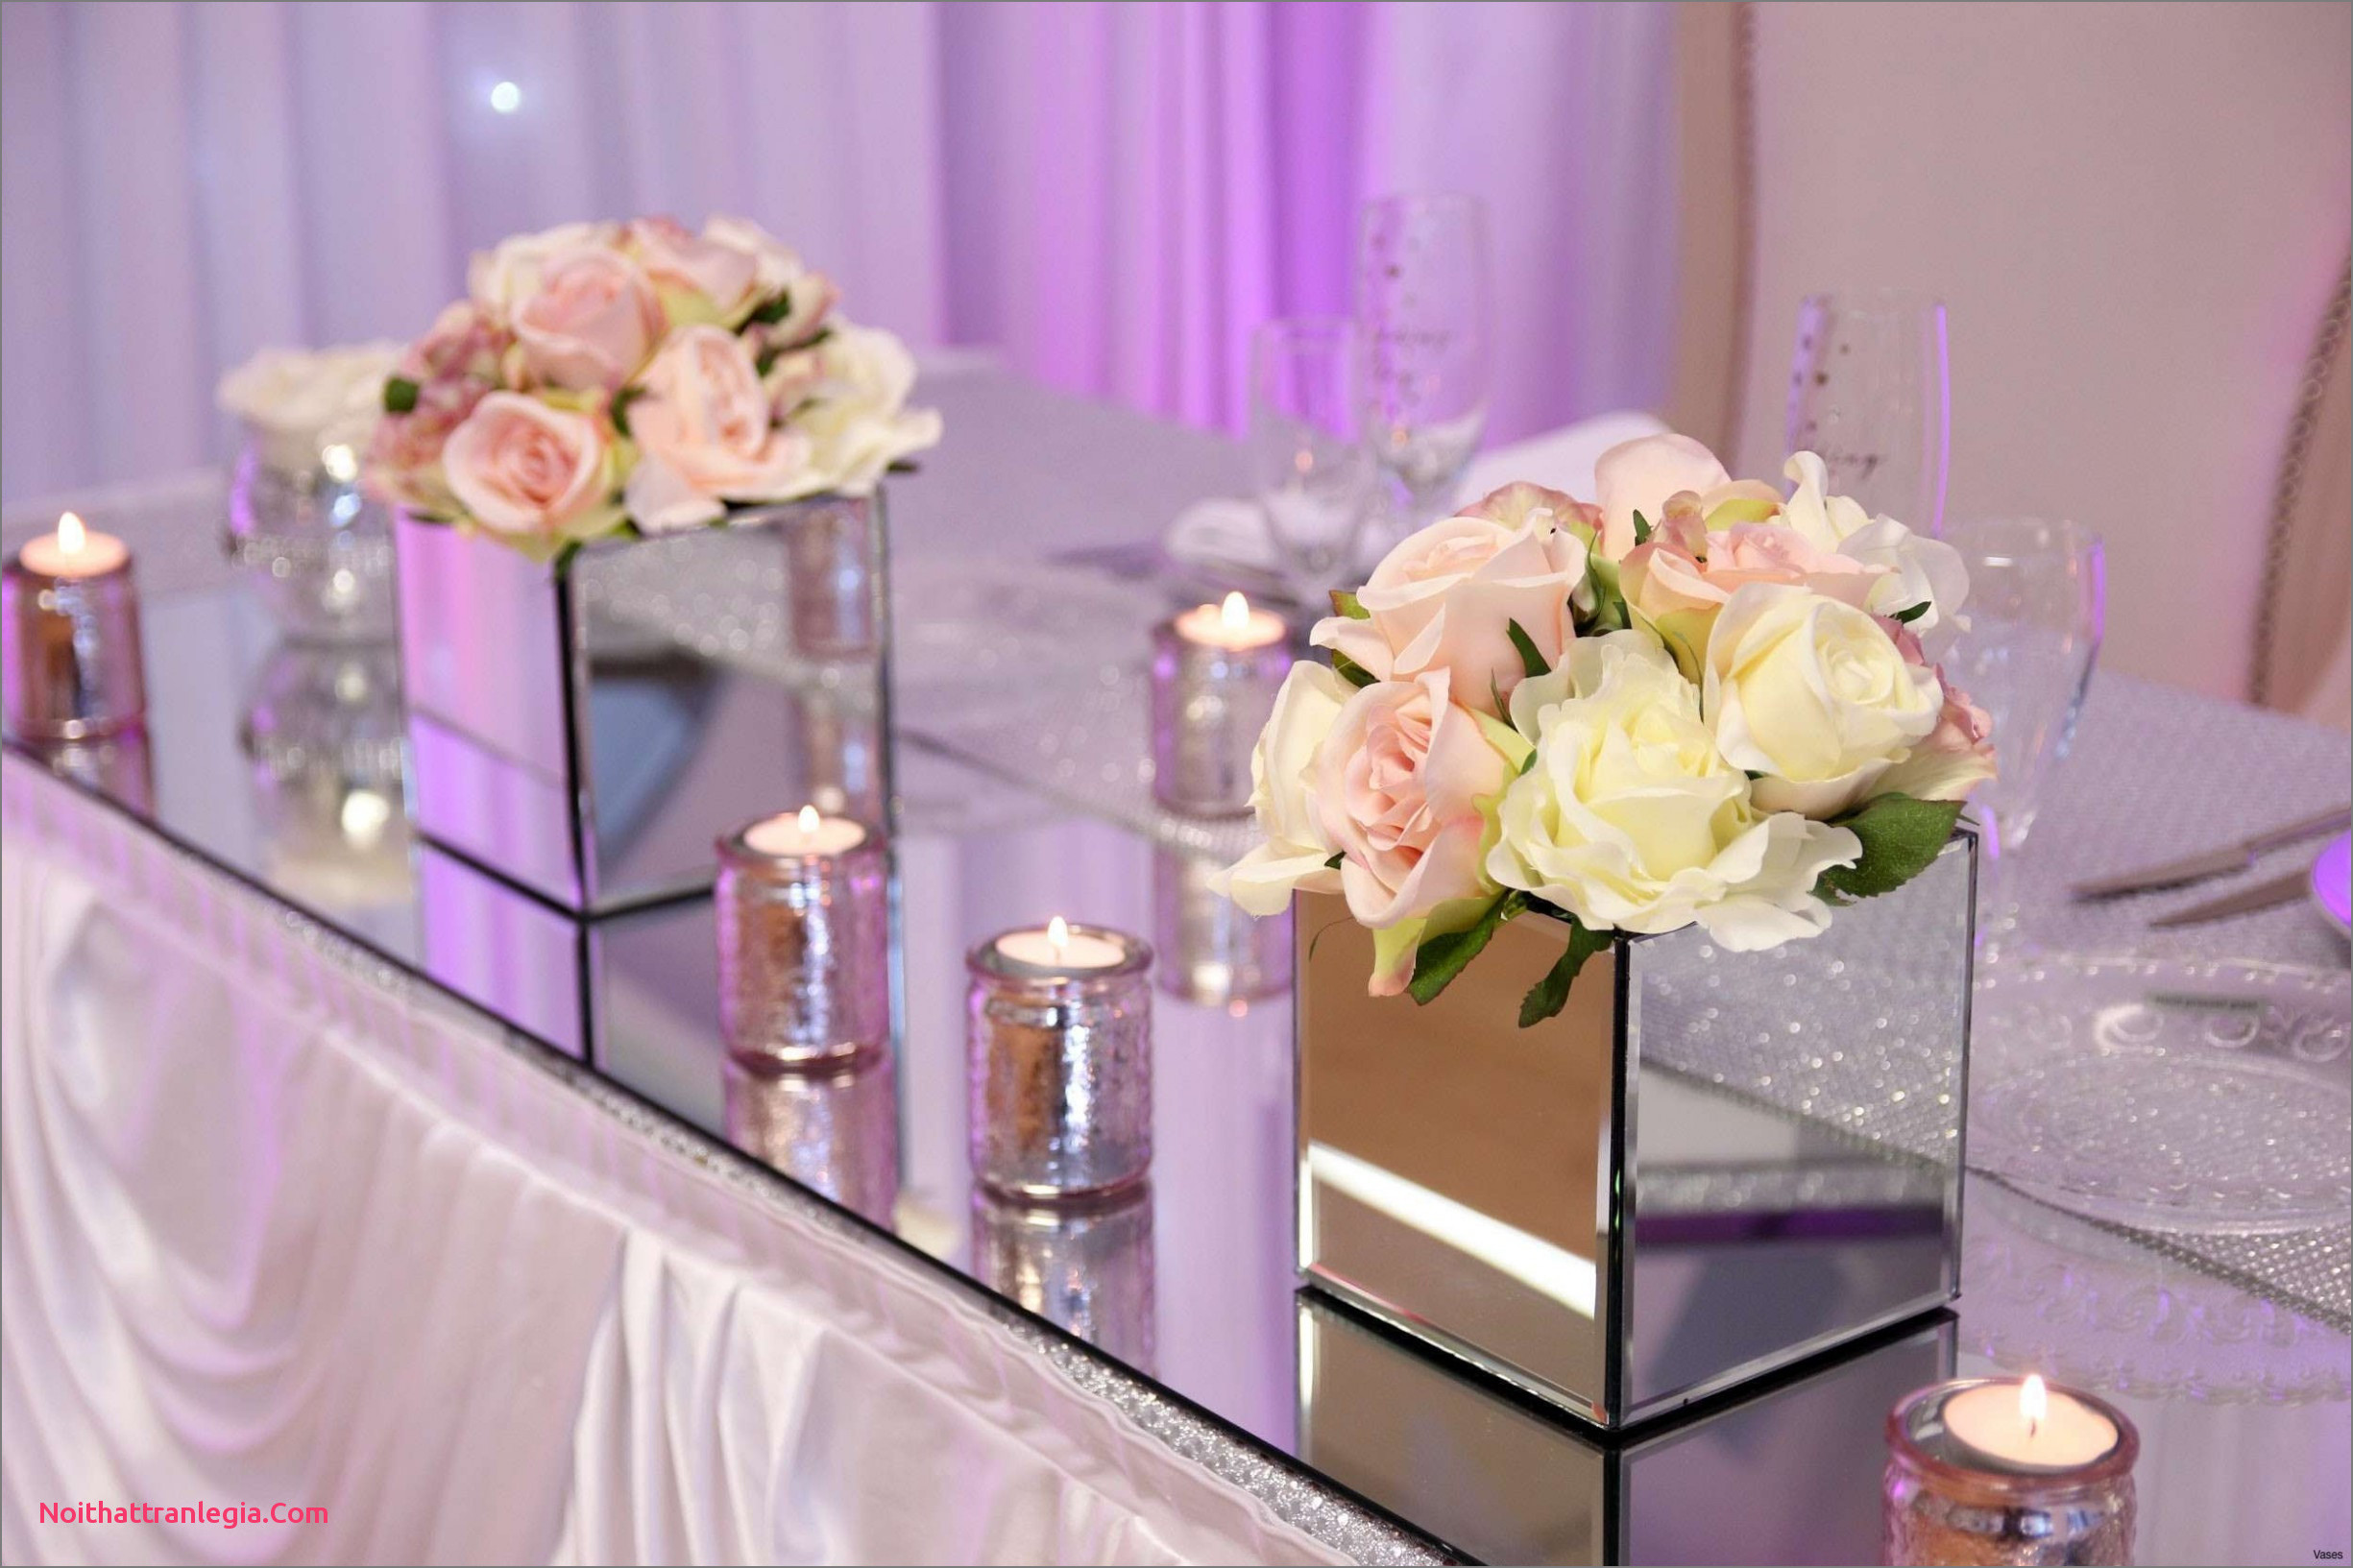 inexpensive vases for centerpieces of 20 wedding vases noithattranlegia vases design within mirrored square vase 3h vases mirror table decorationi 0d weddings